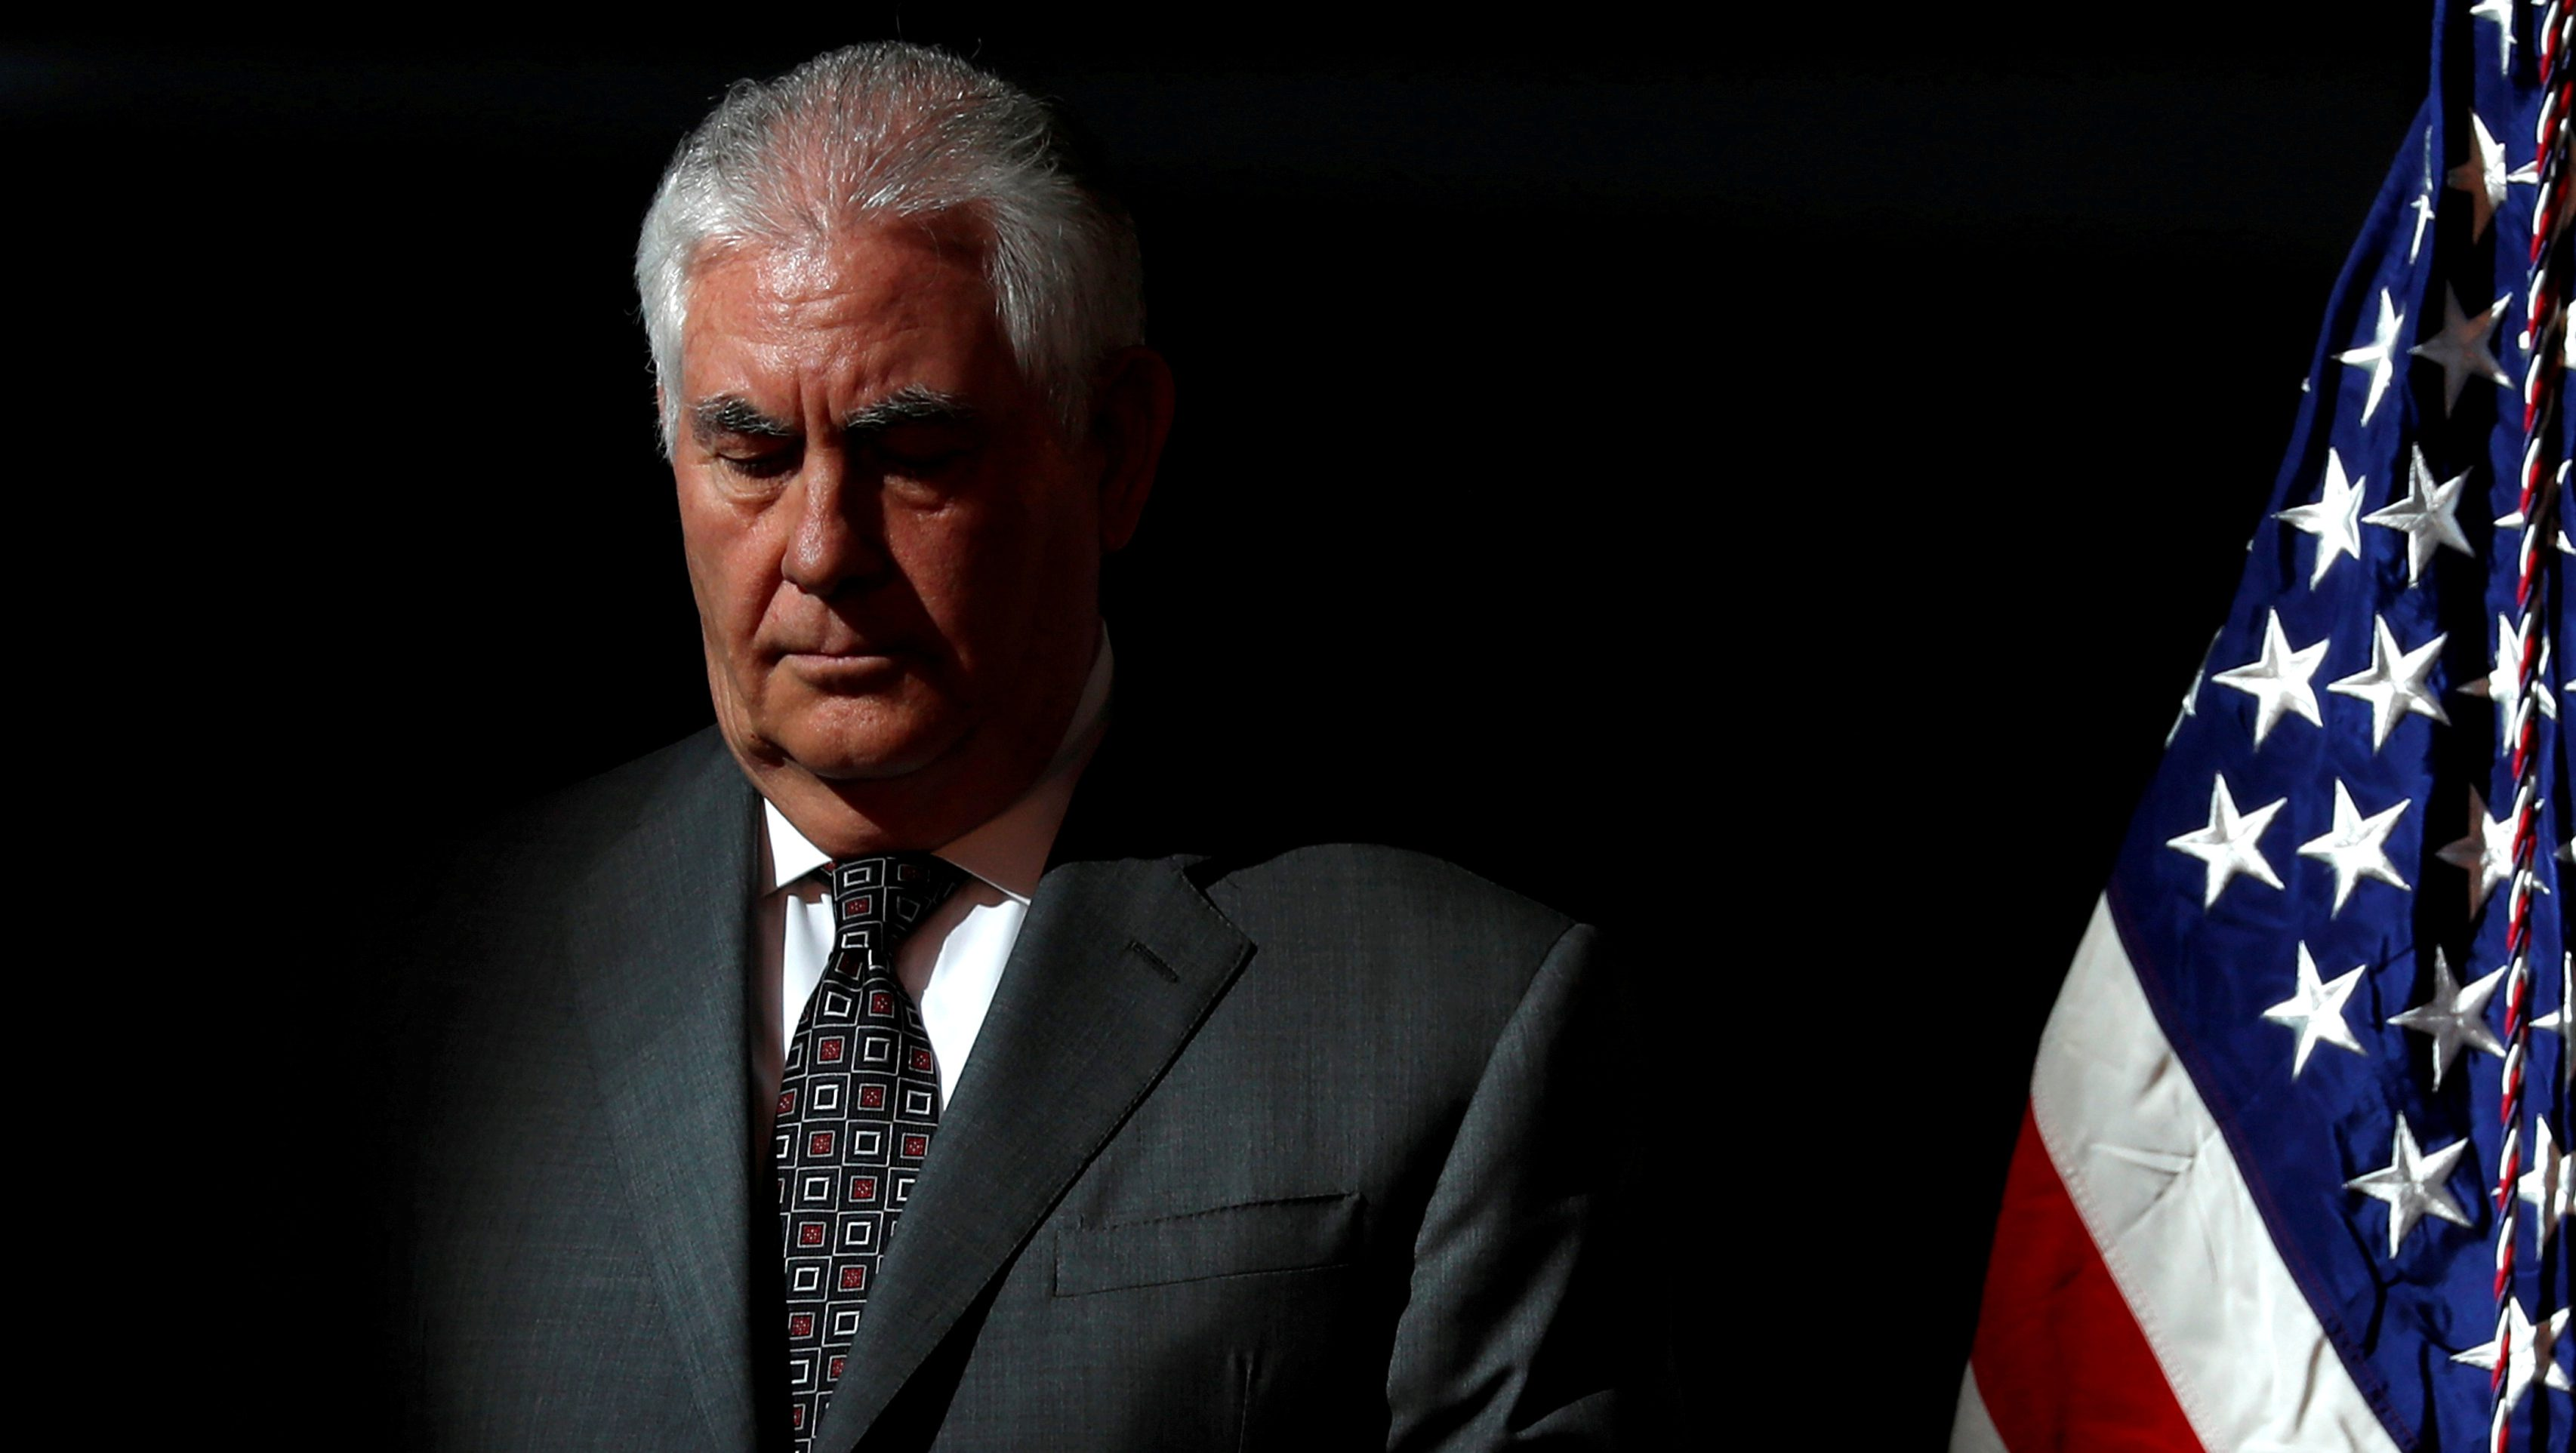 FILE PHOTO: U.S. Secretary of State Rex Tillerson participates in the first meeting of the U.S. National Space Council at the National Air and Space Museum's Udvar-Hazy Center in Chantilly, Virginia, U.S. October 5, 2017.